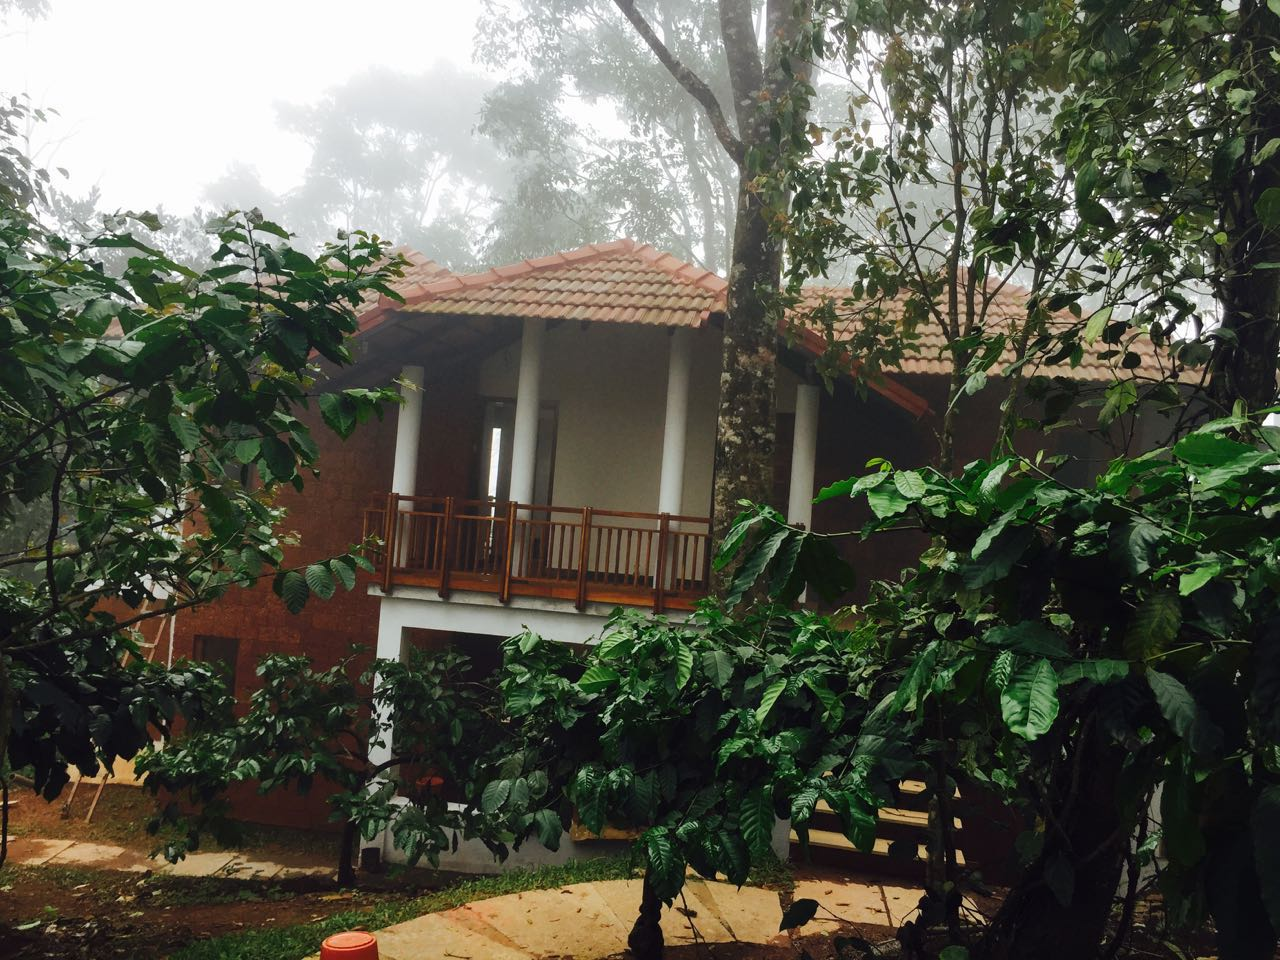 motel in wayanad,motels wayanad,motels in wayanad,motels wayanad,motel in calicut,motels calicut,motels in calicut,motels calicut